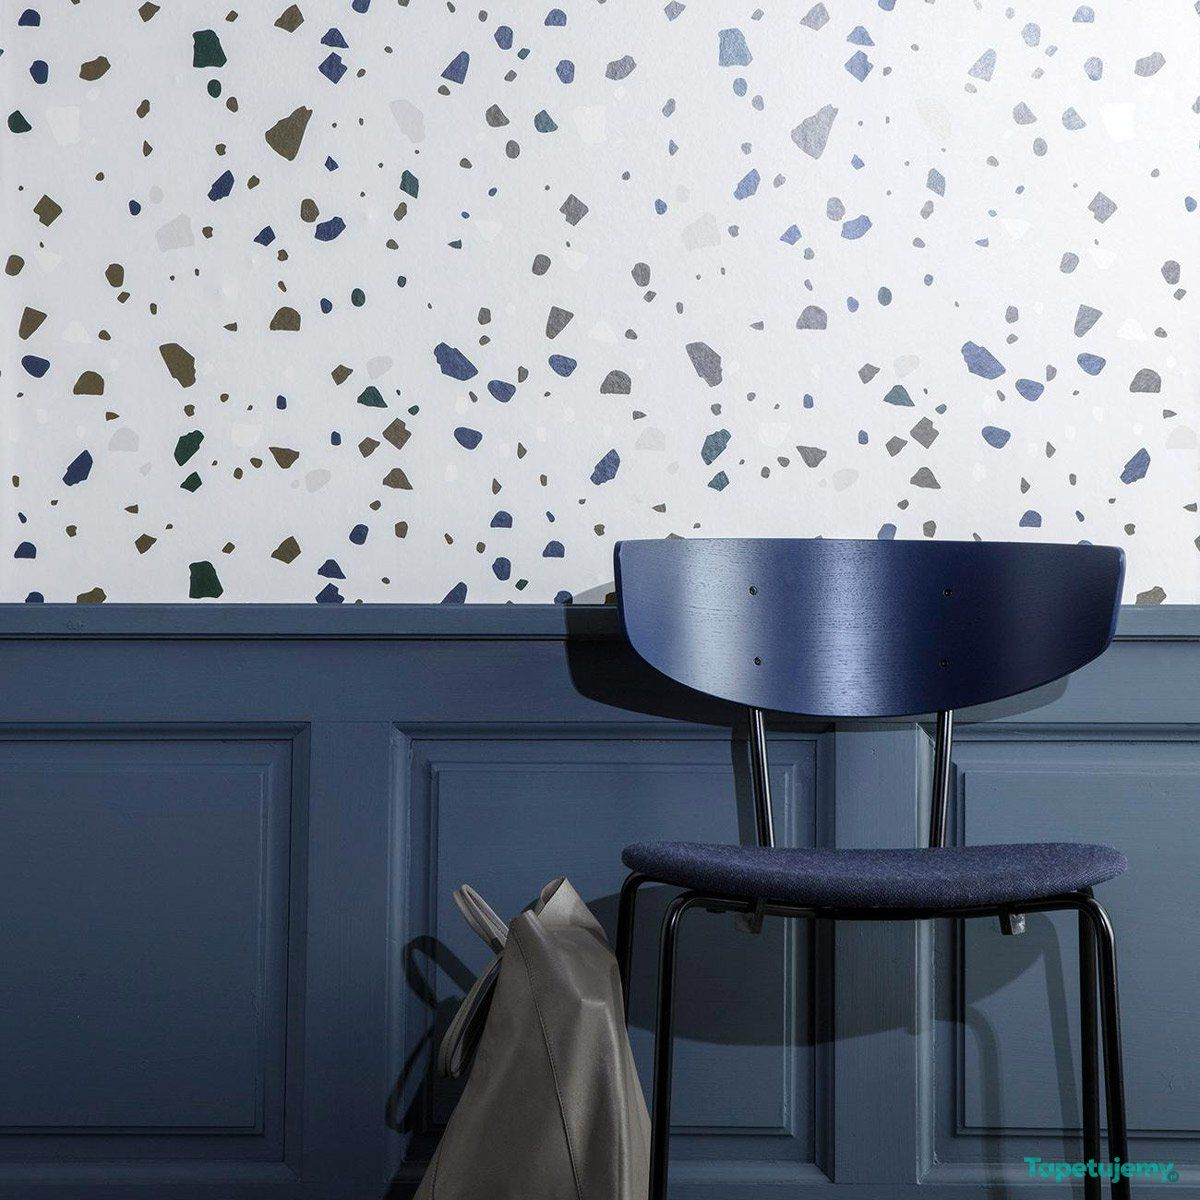 Tapeta Ferm Living Terrazzo Lastryko Lastriko Grey 179